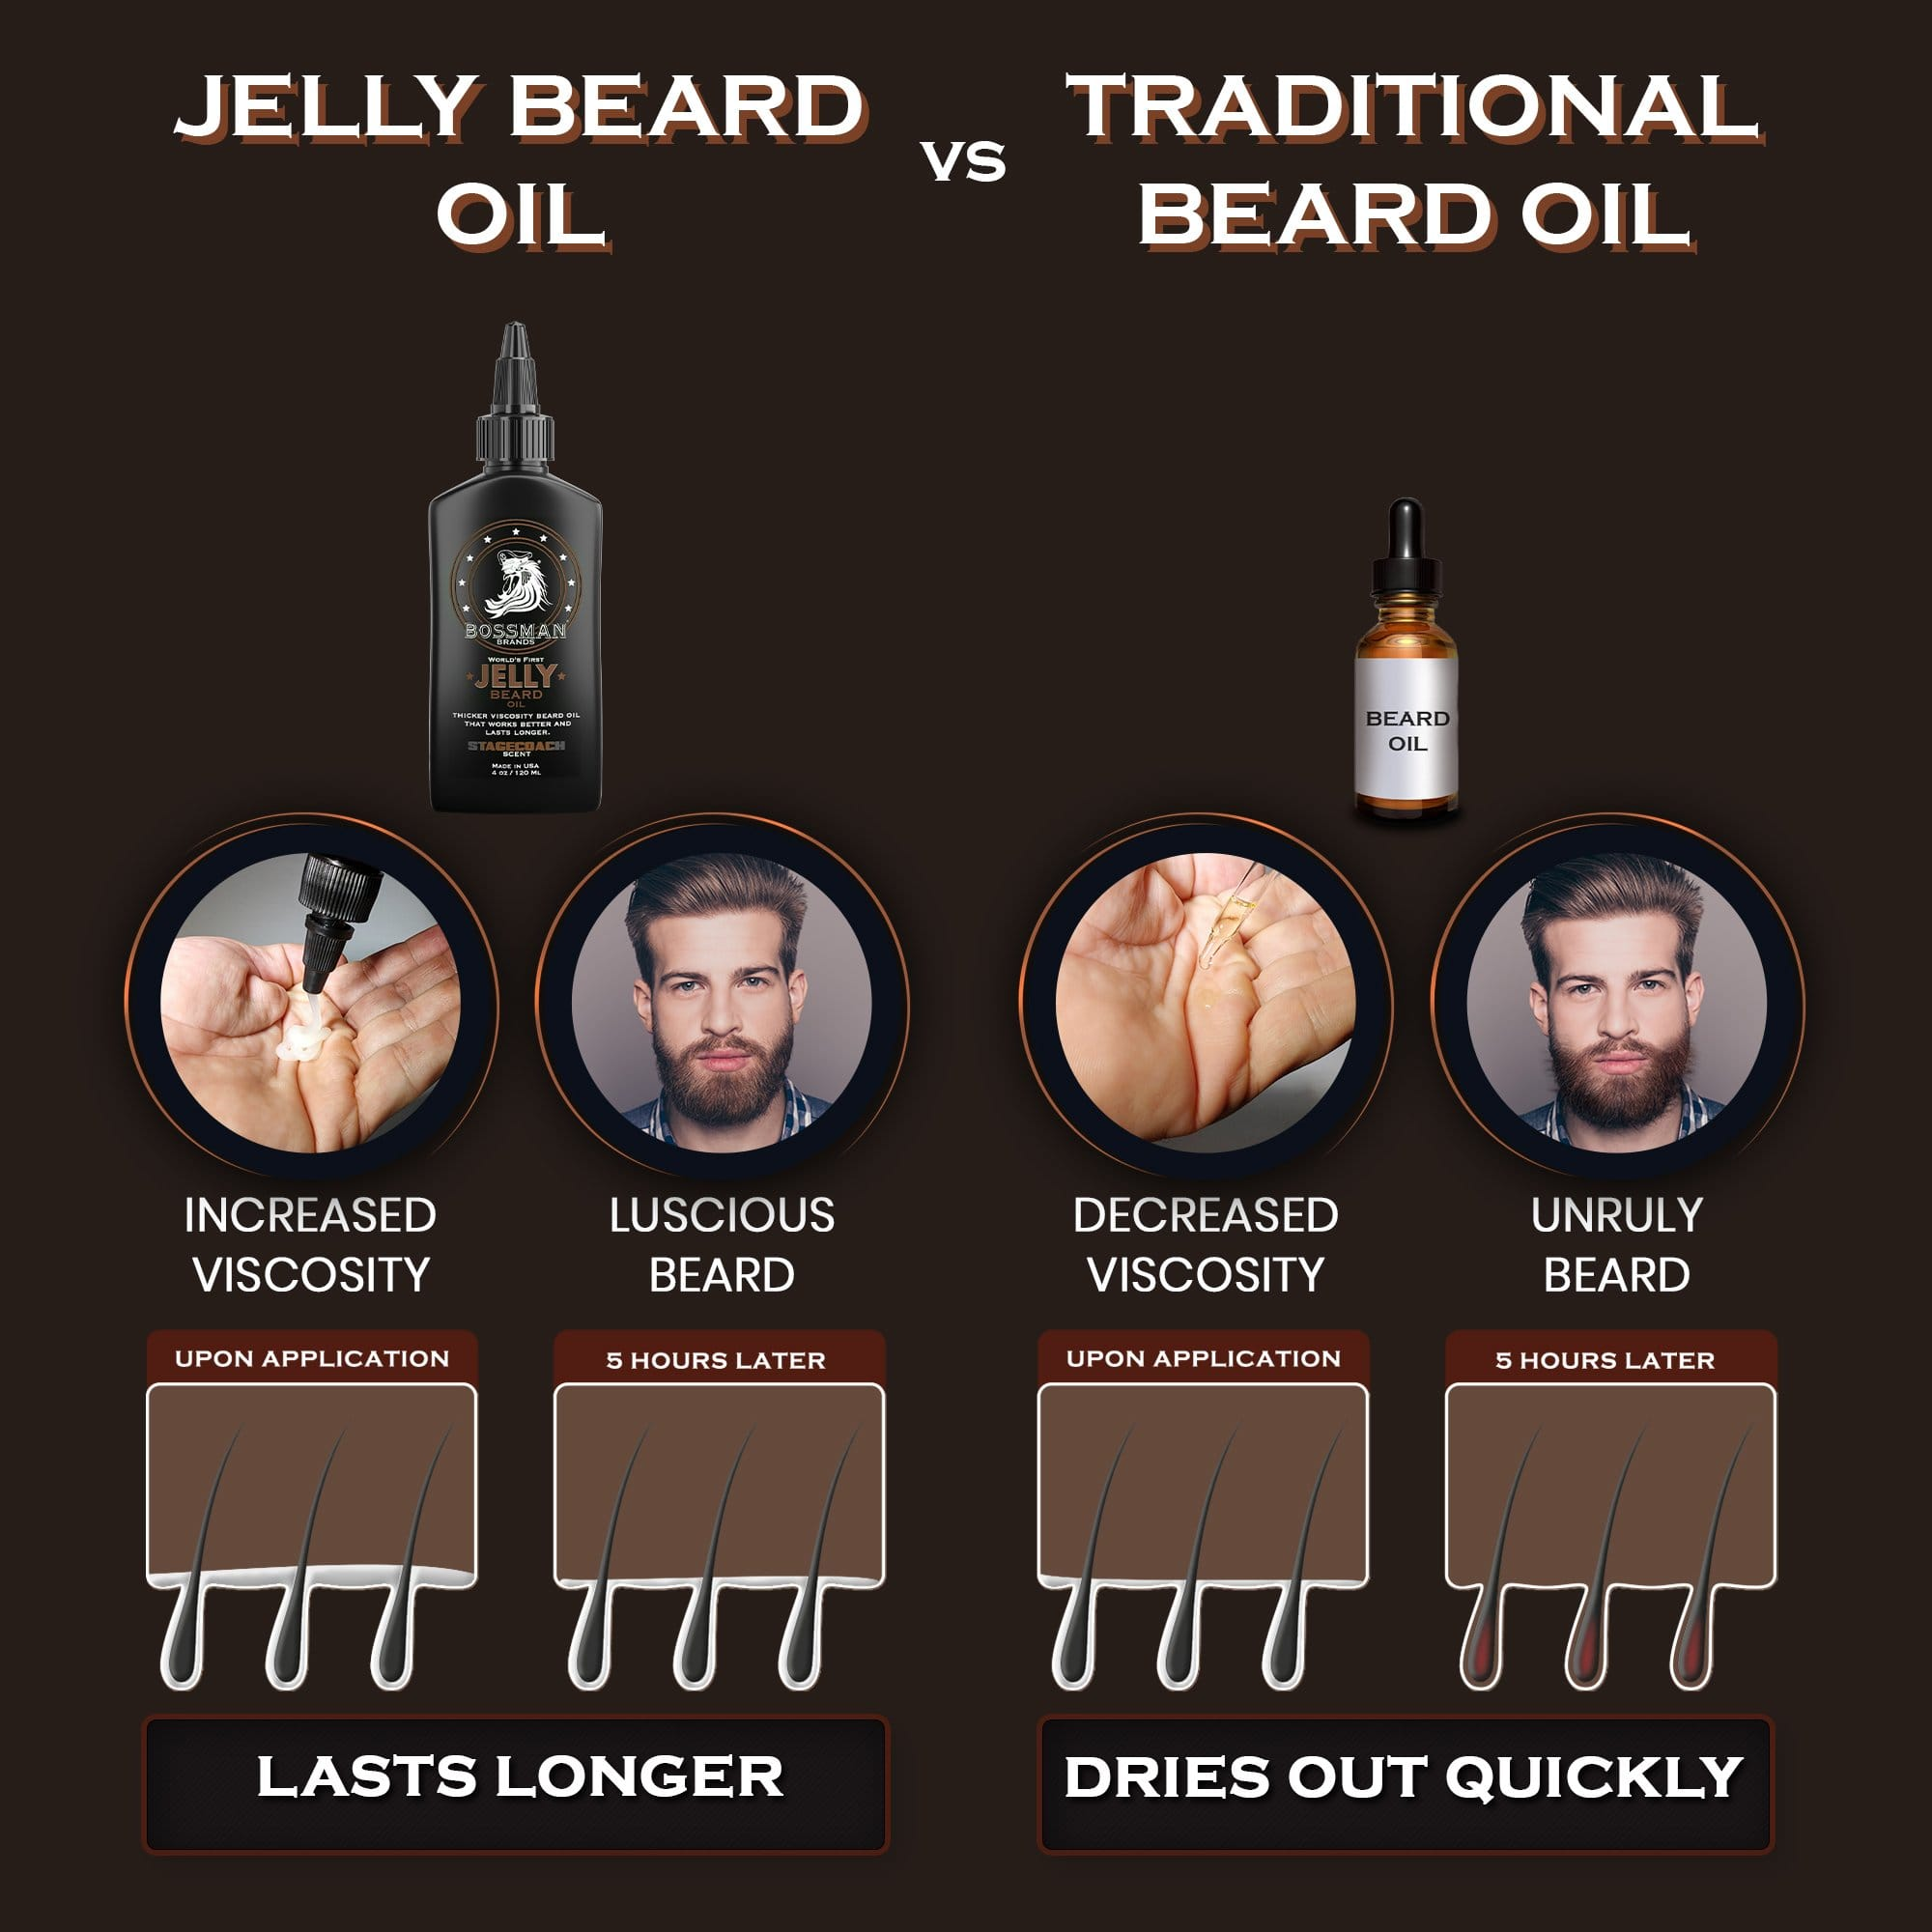 Jelly Beard Oil